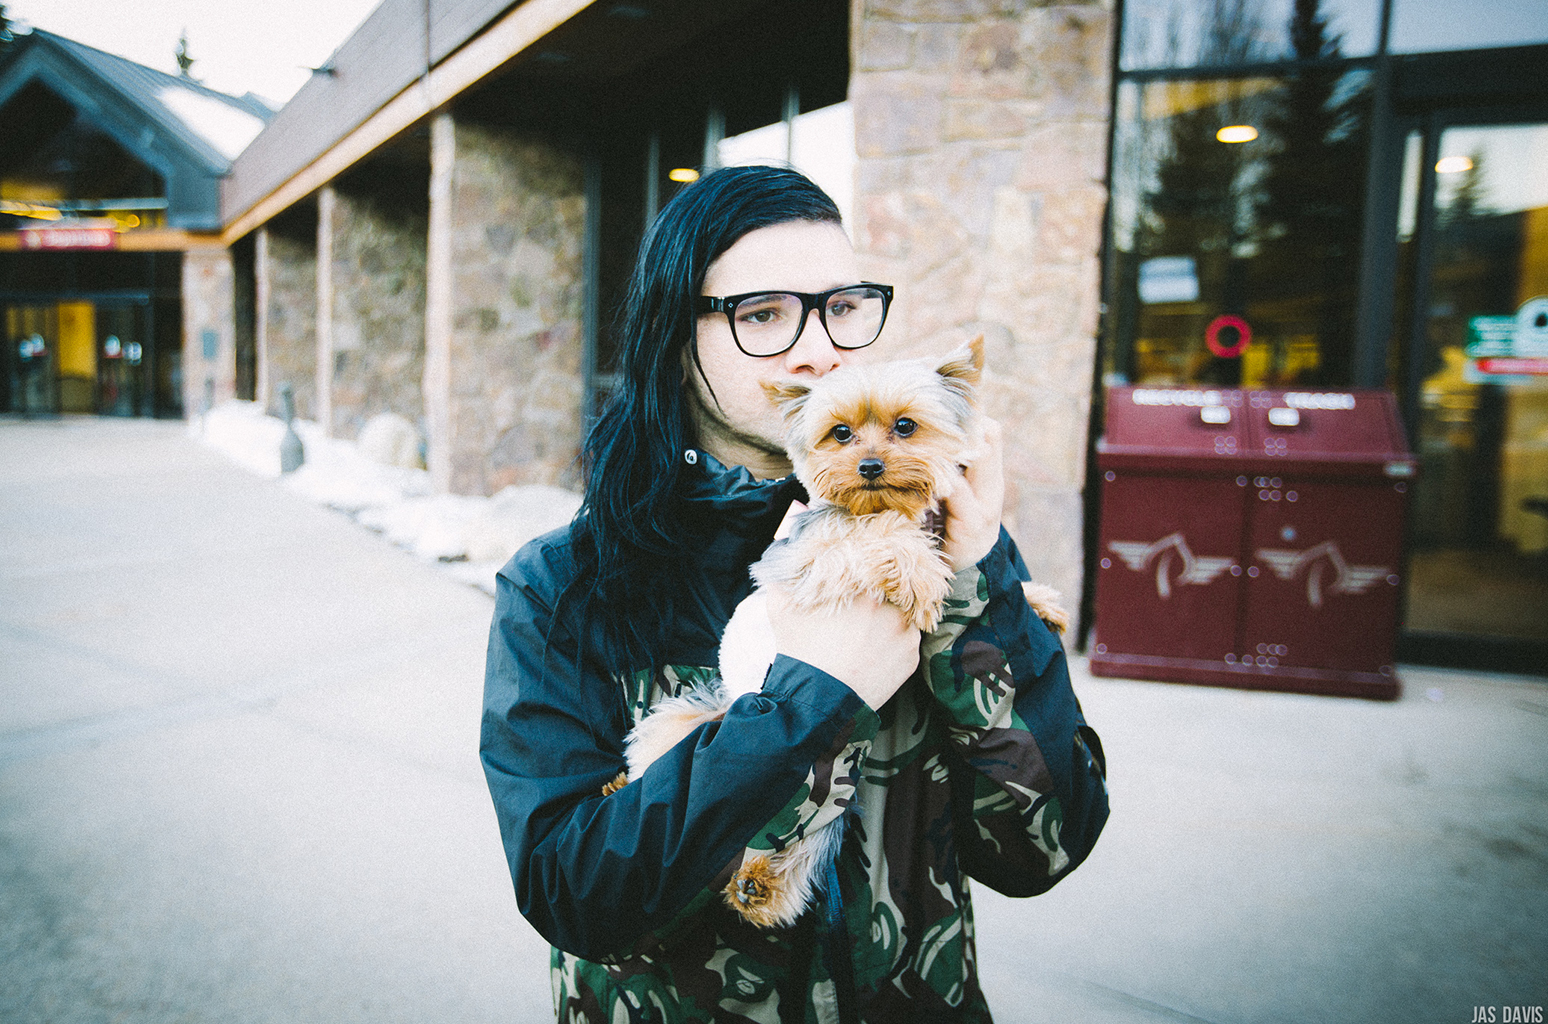 HQ Skrillex Wallpapers | File 1269.51Kb